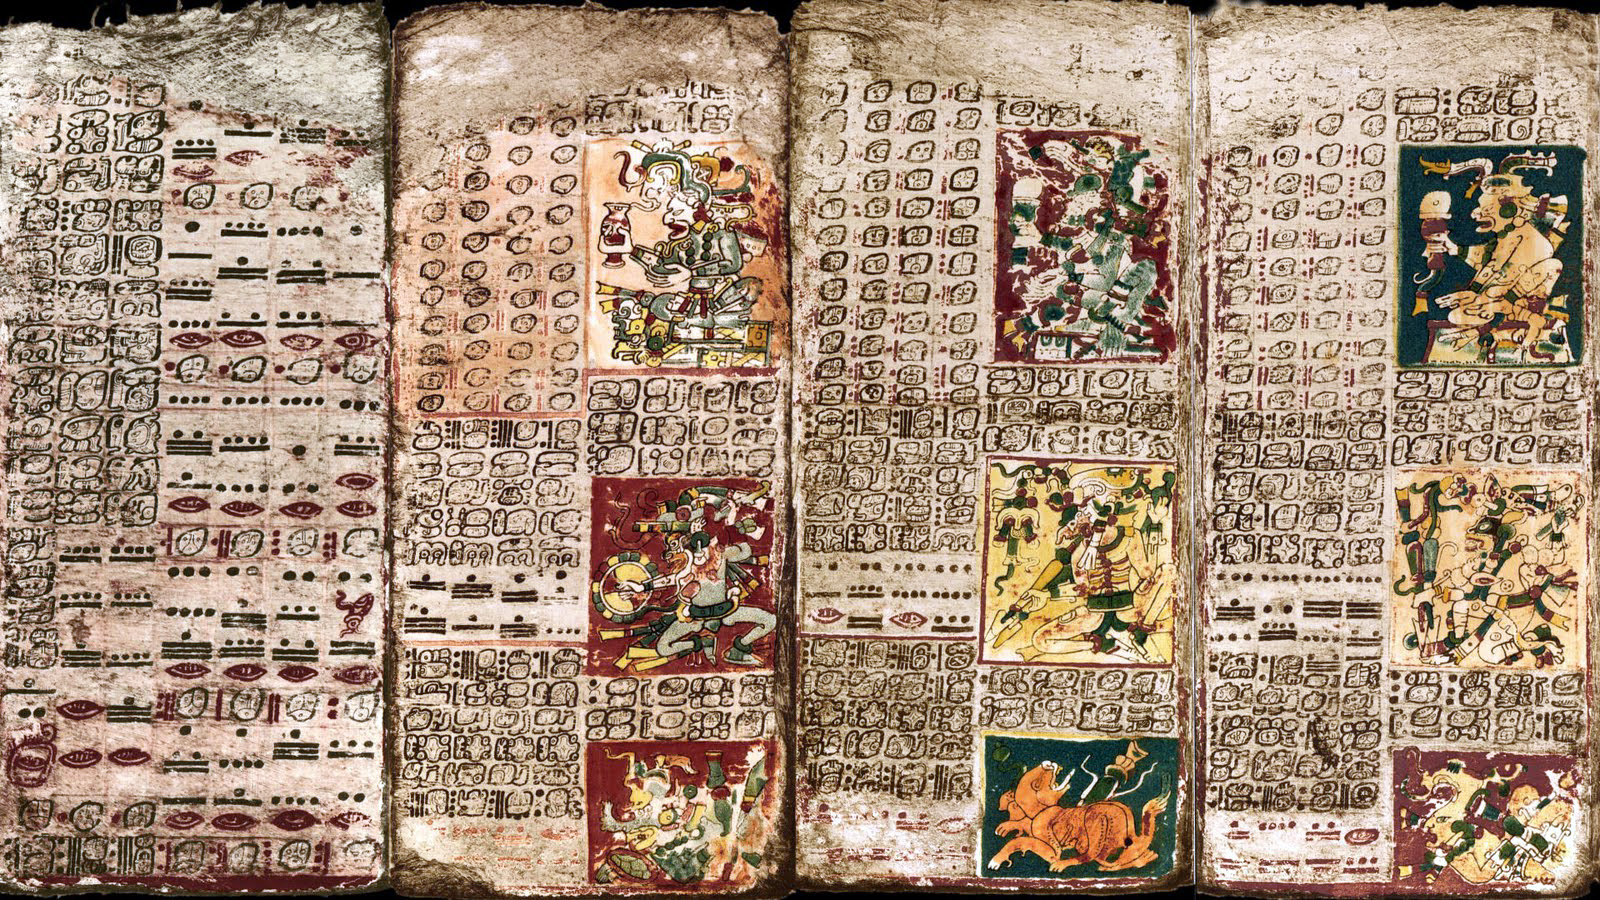 mayan science and astronomy - photo #16